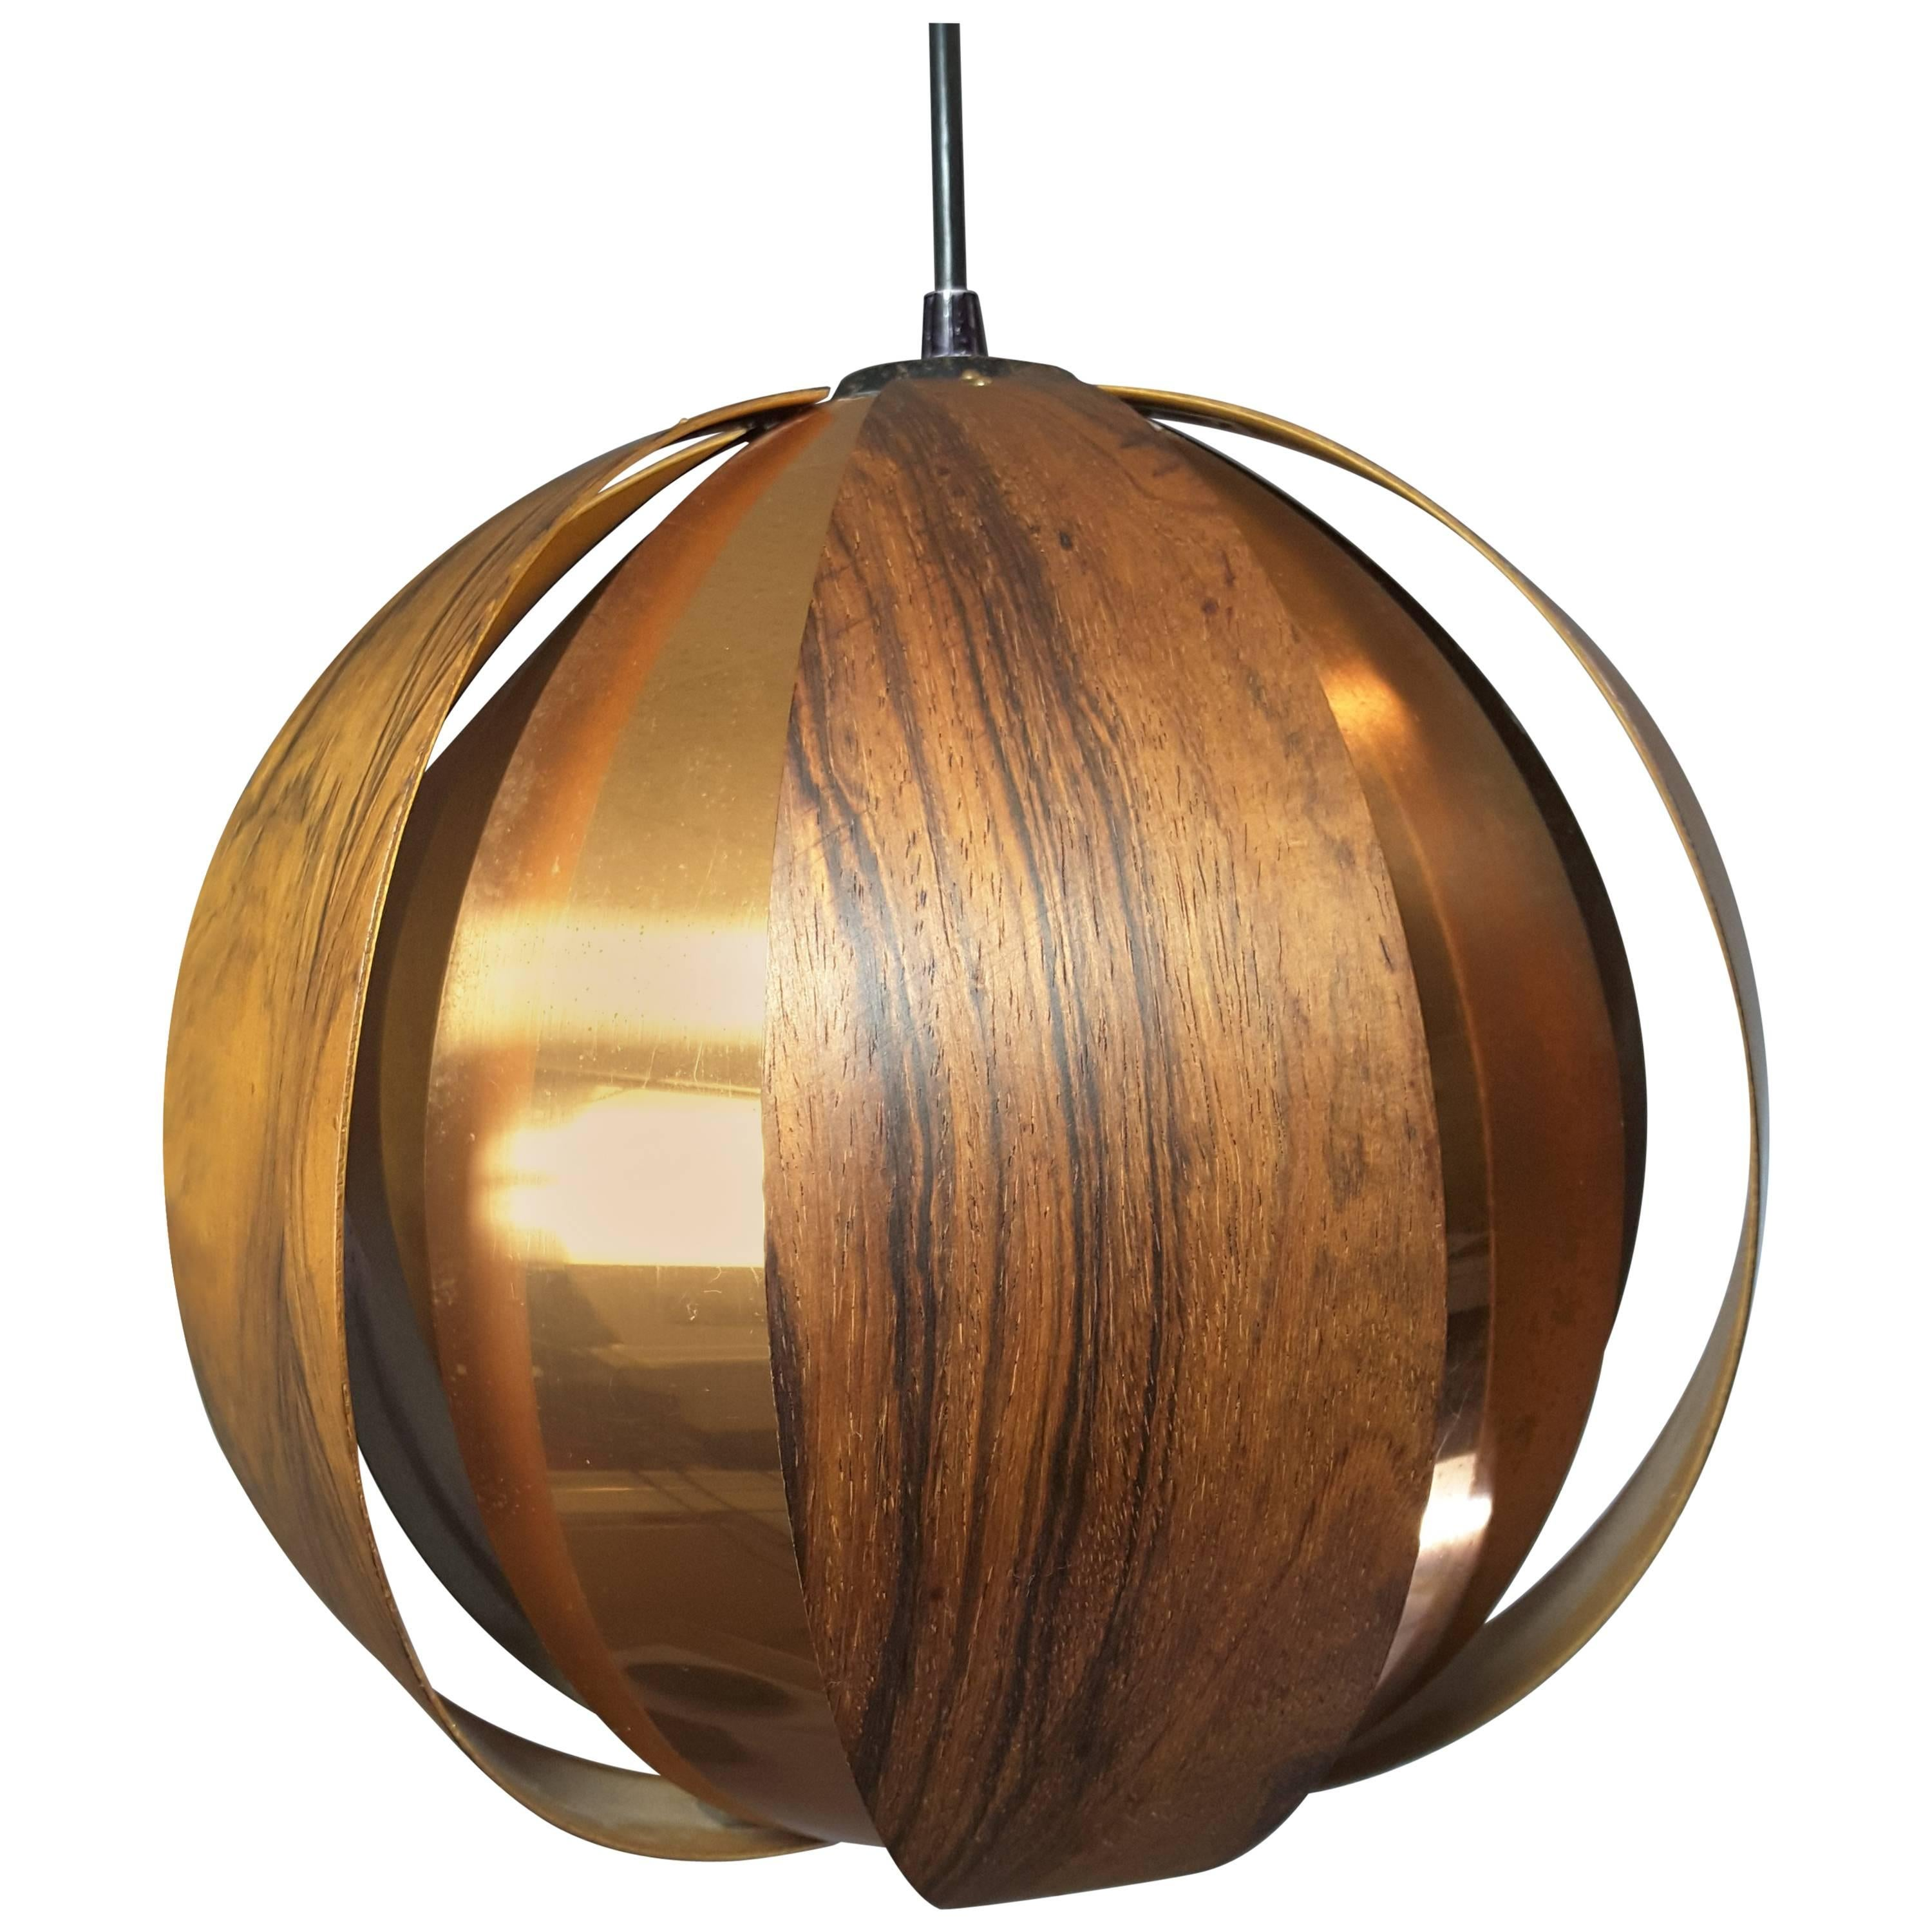 Rosewood and Copper Ball Pendant by Verner Schou, for Coronell  Elecktro, Danish